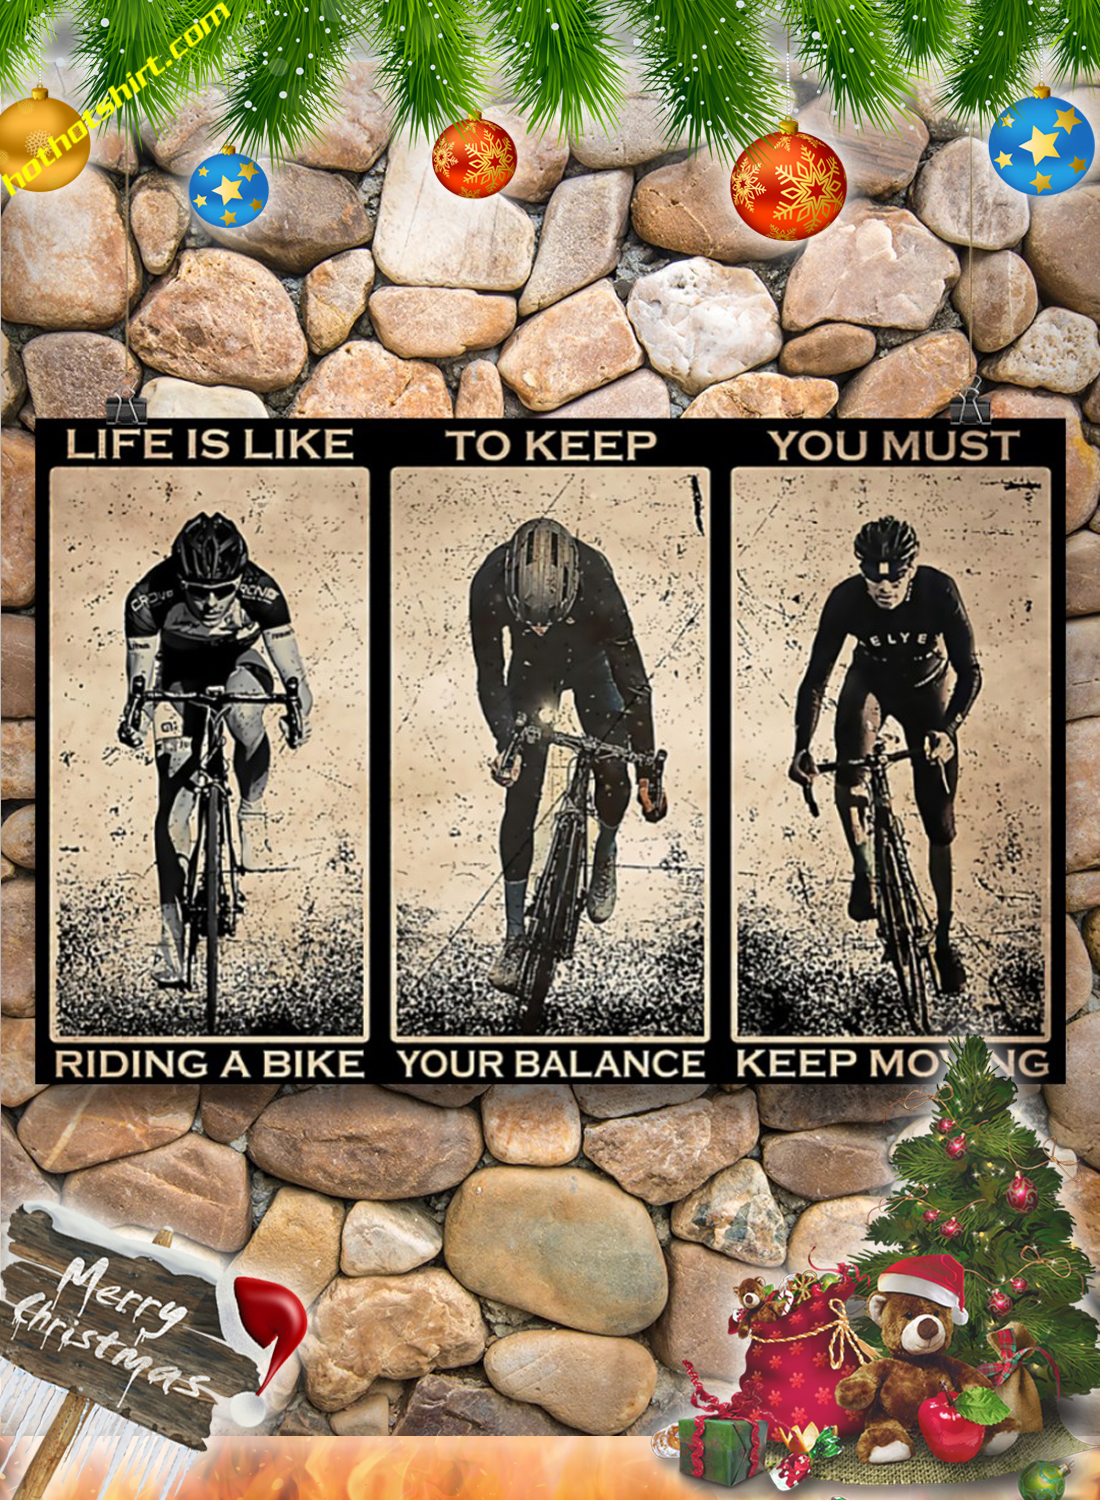 Cycling Life is like riding a bike poster 2Cycling Life is like riding a bike poster 2